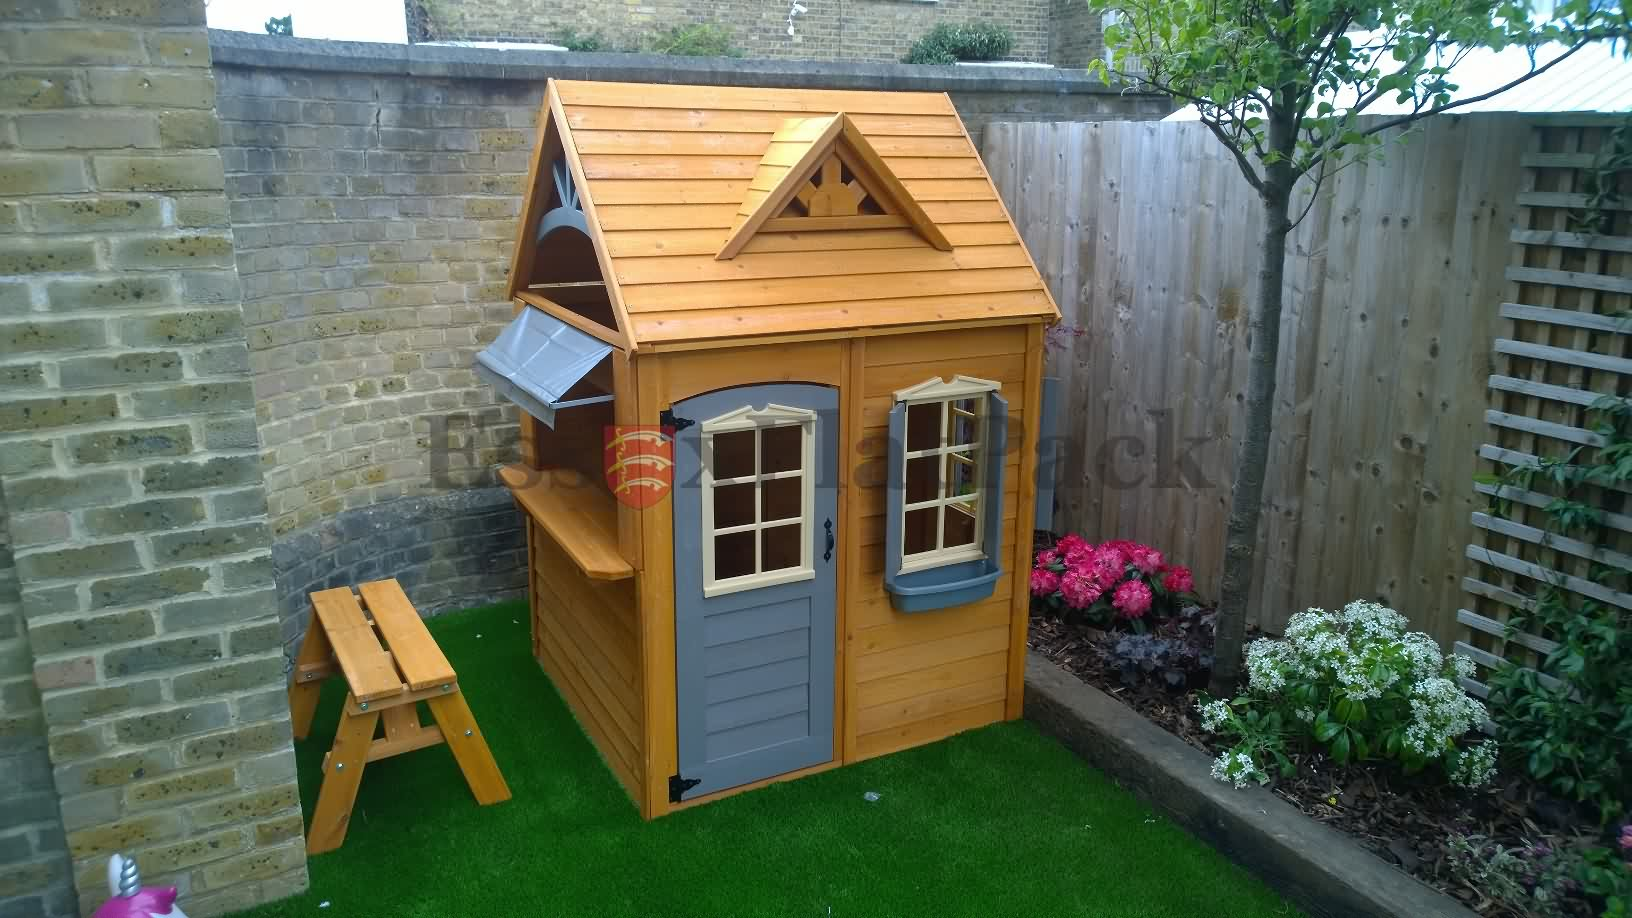 essexflatpack-playhouse-20170424125330.jpg